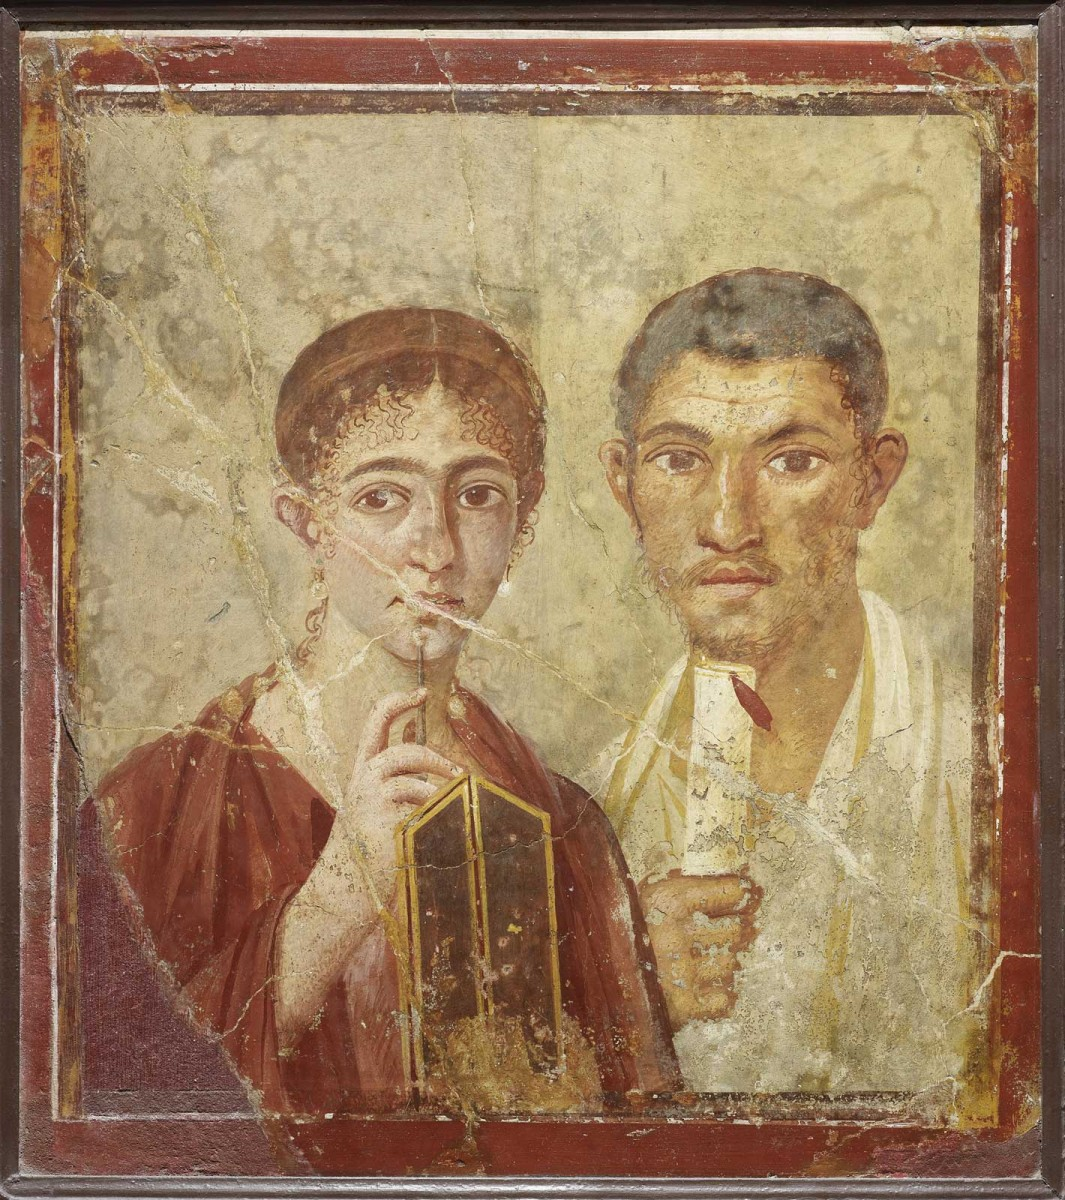 Wall painting of the baker Terentius Neo and his wife. From the House of Terentius Neo, Pompeii. AD 50-79. Copyright Soprintendenza Speciale per i Beni Archeologici di Napoli e Pompei/Trustees of the British Museum.